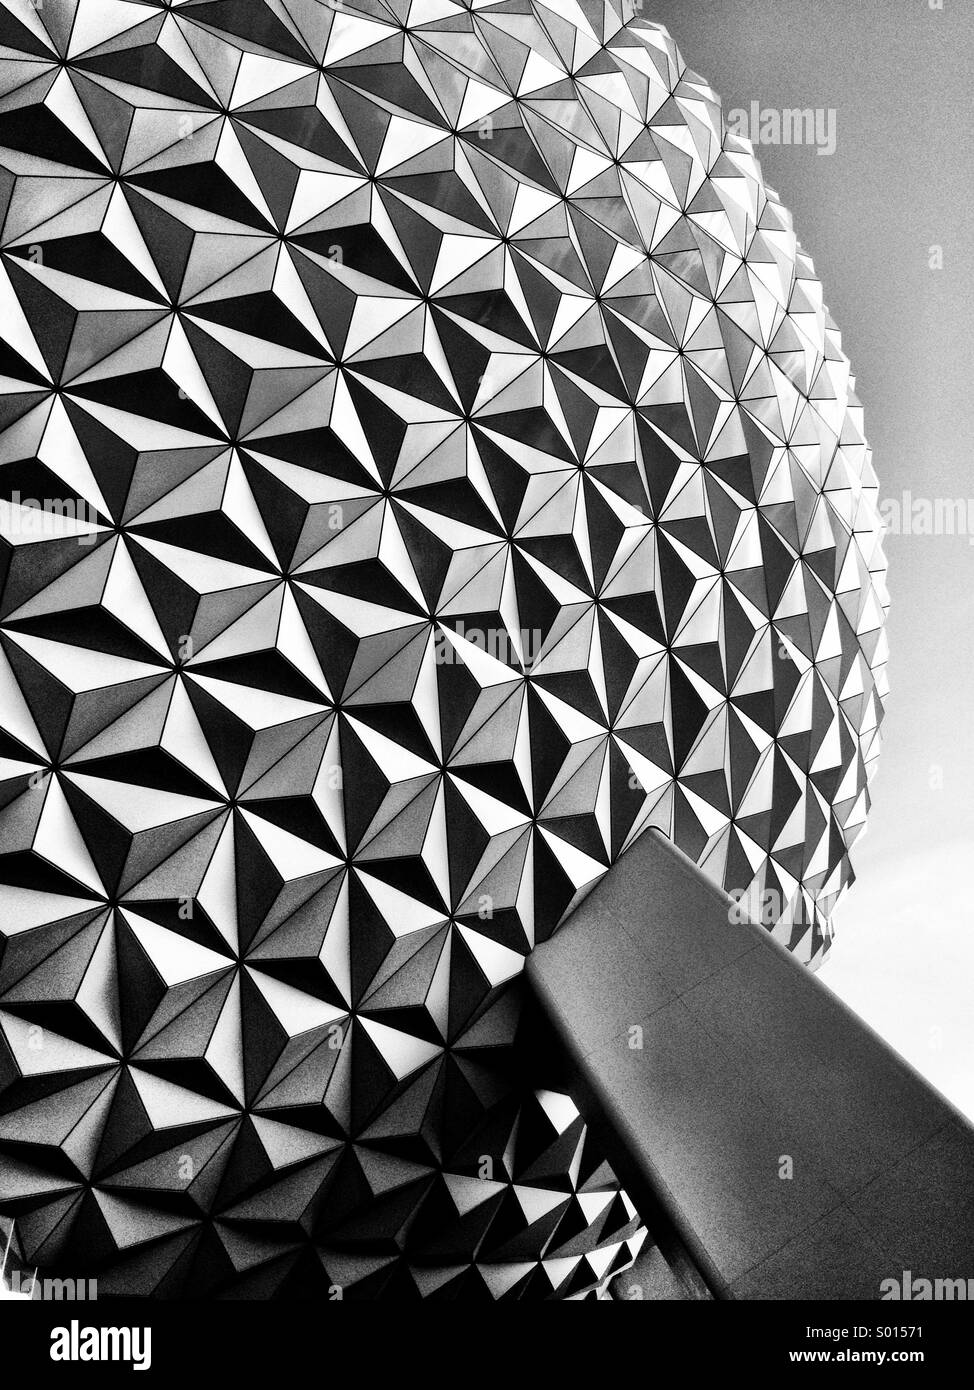 Outside of the 'Spaceship Earth' ride at Epcot in Disney World, Orlando, Florida, USA. - Stock Image